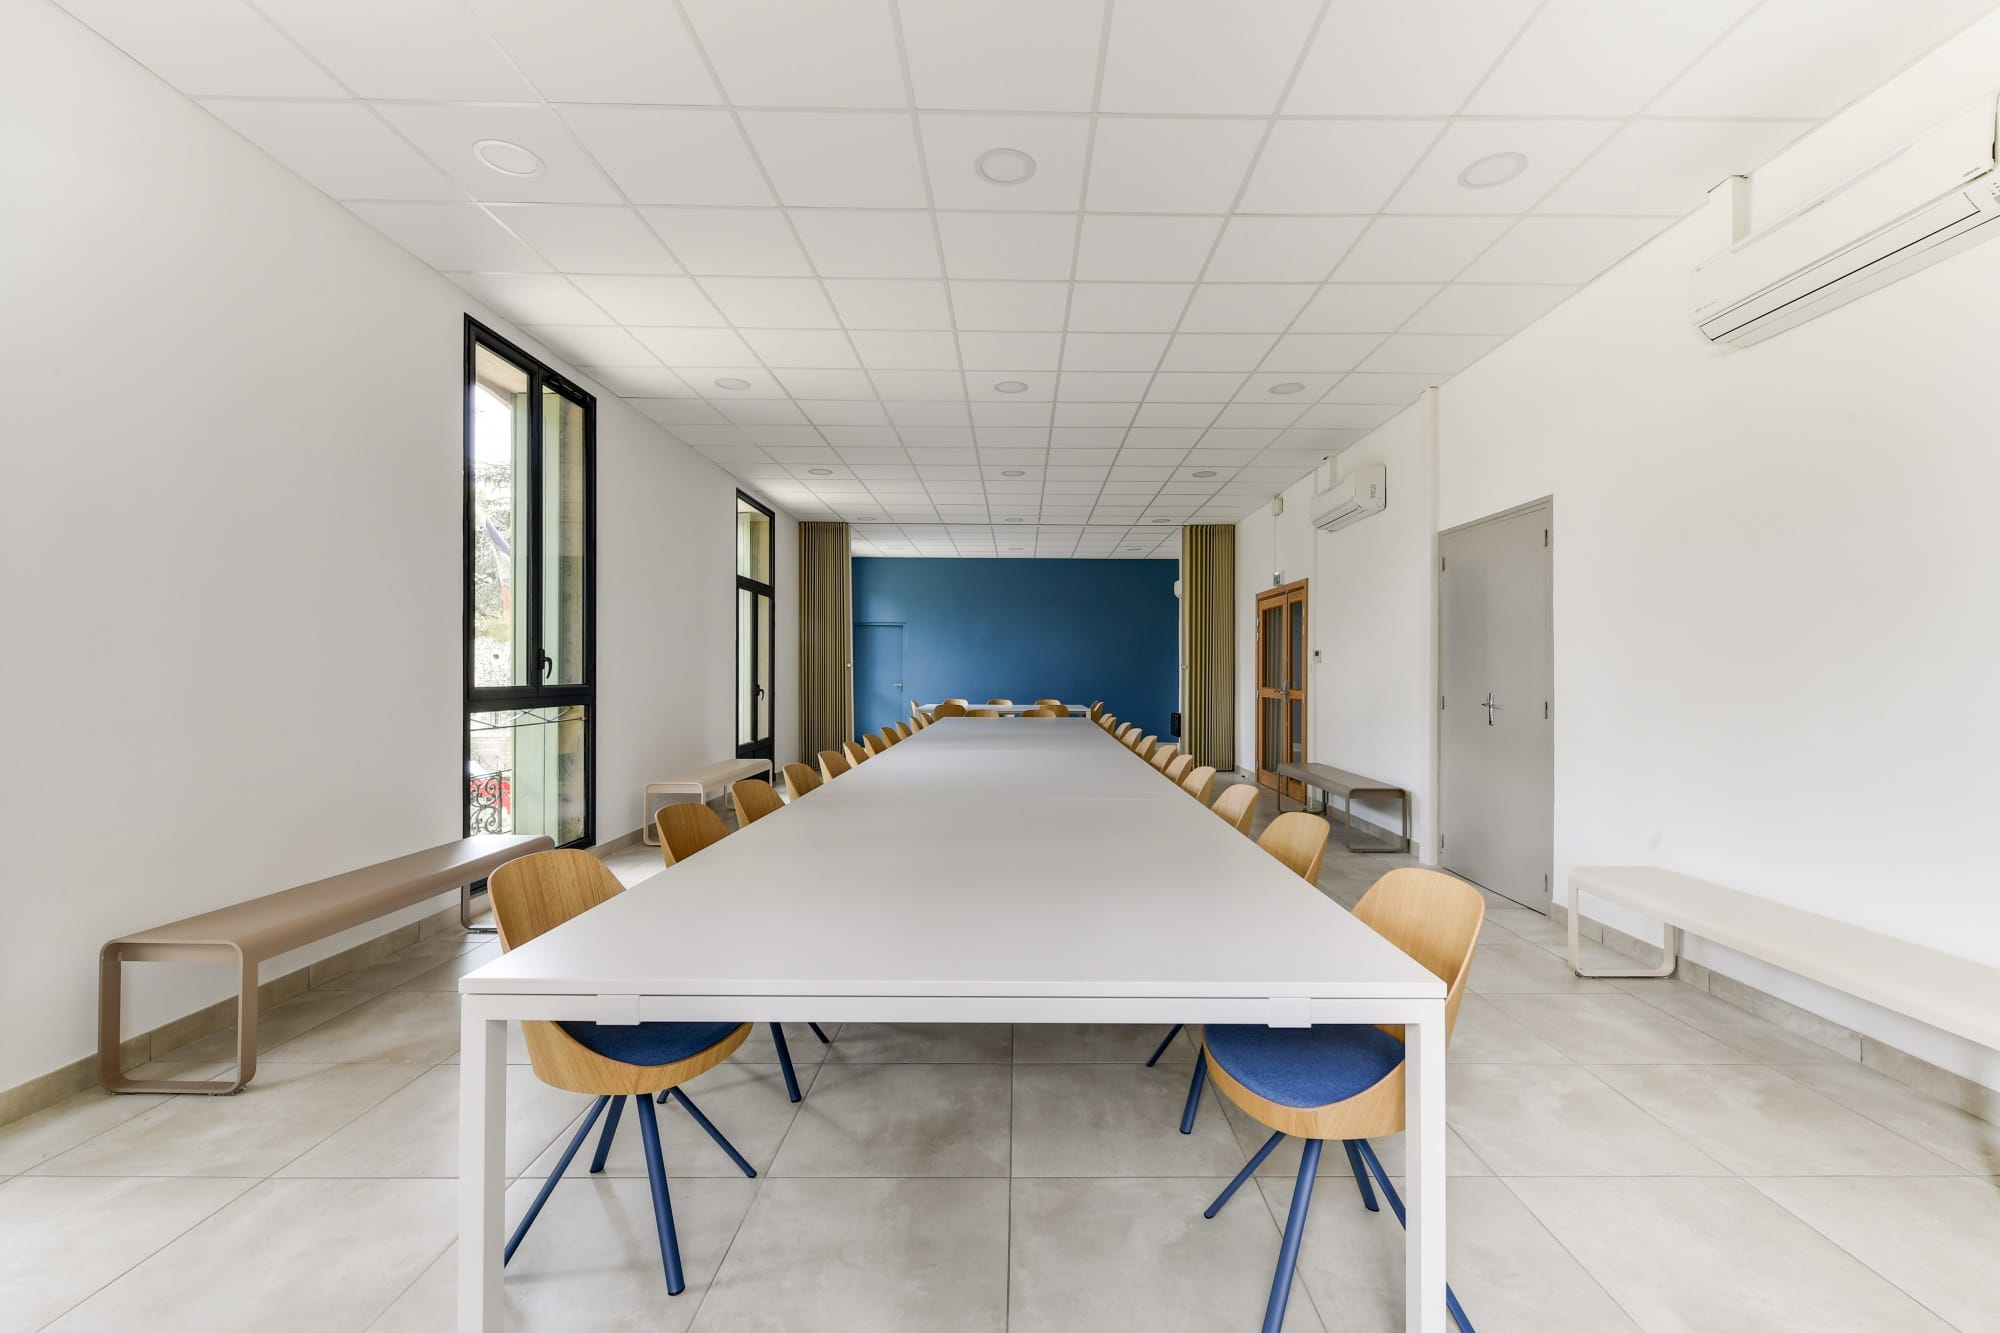 Ayuntamiento de Bouillargues — Enea Design